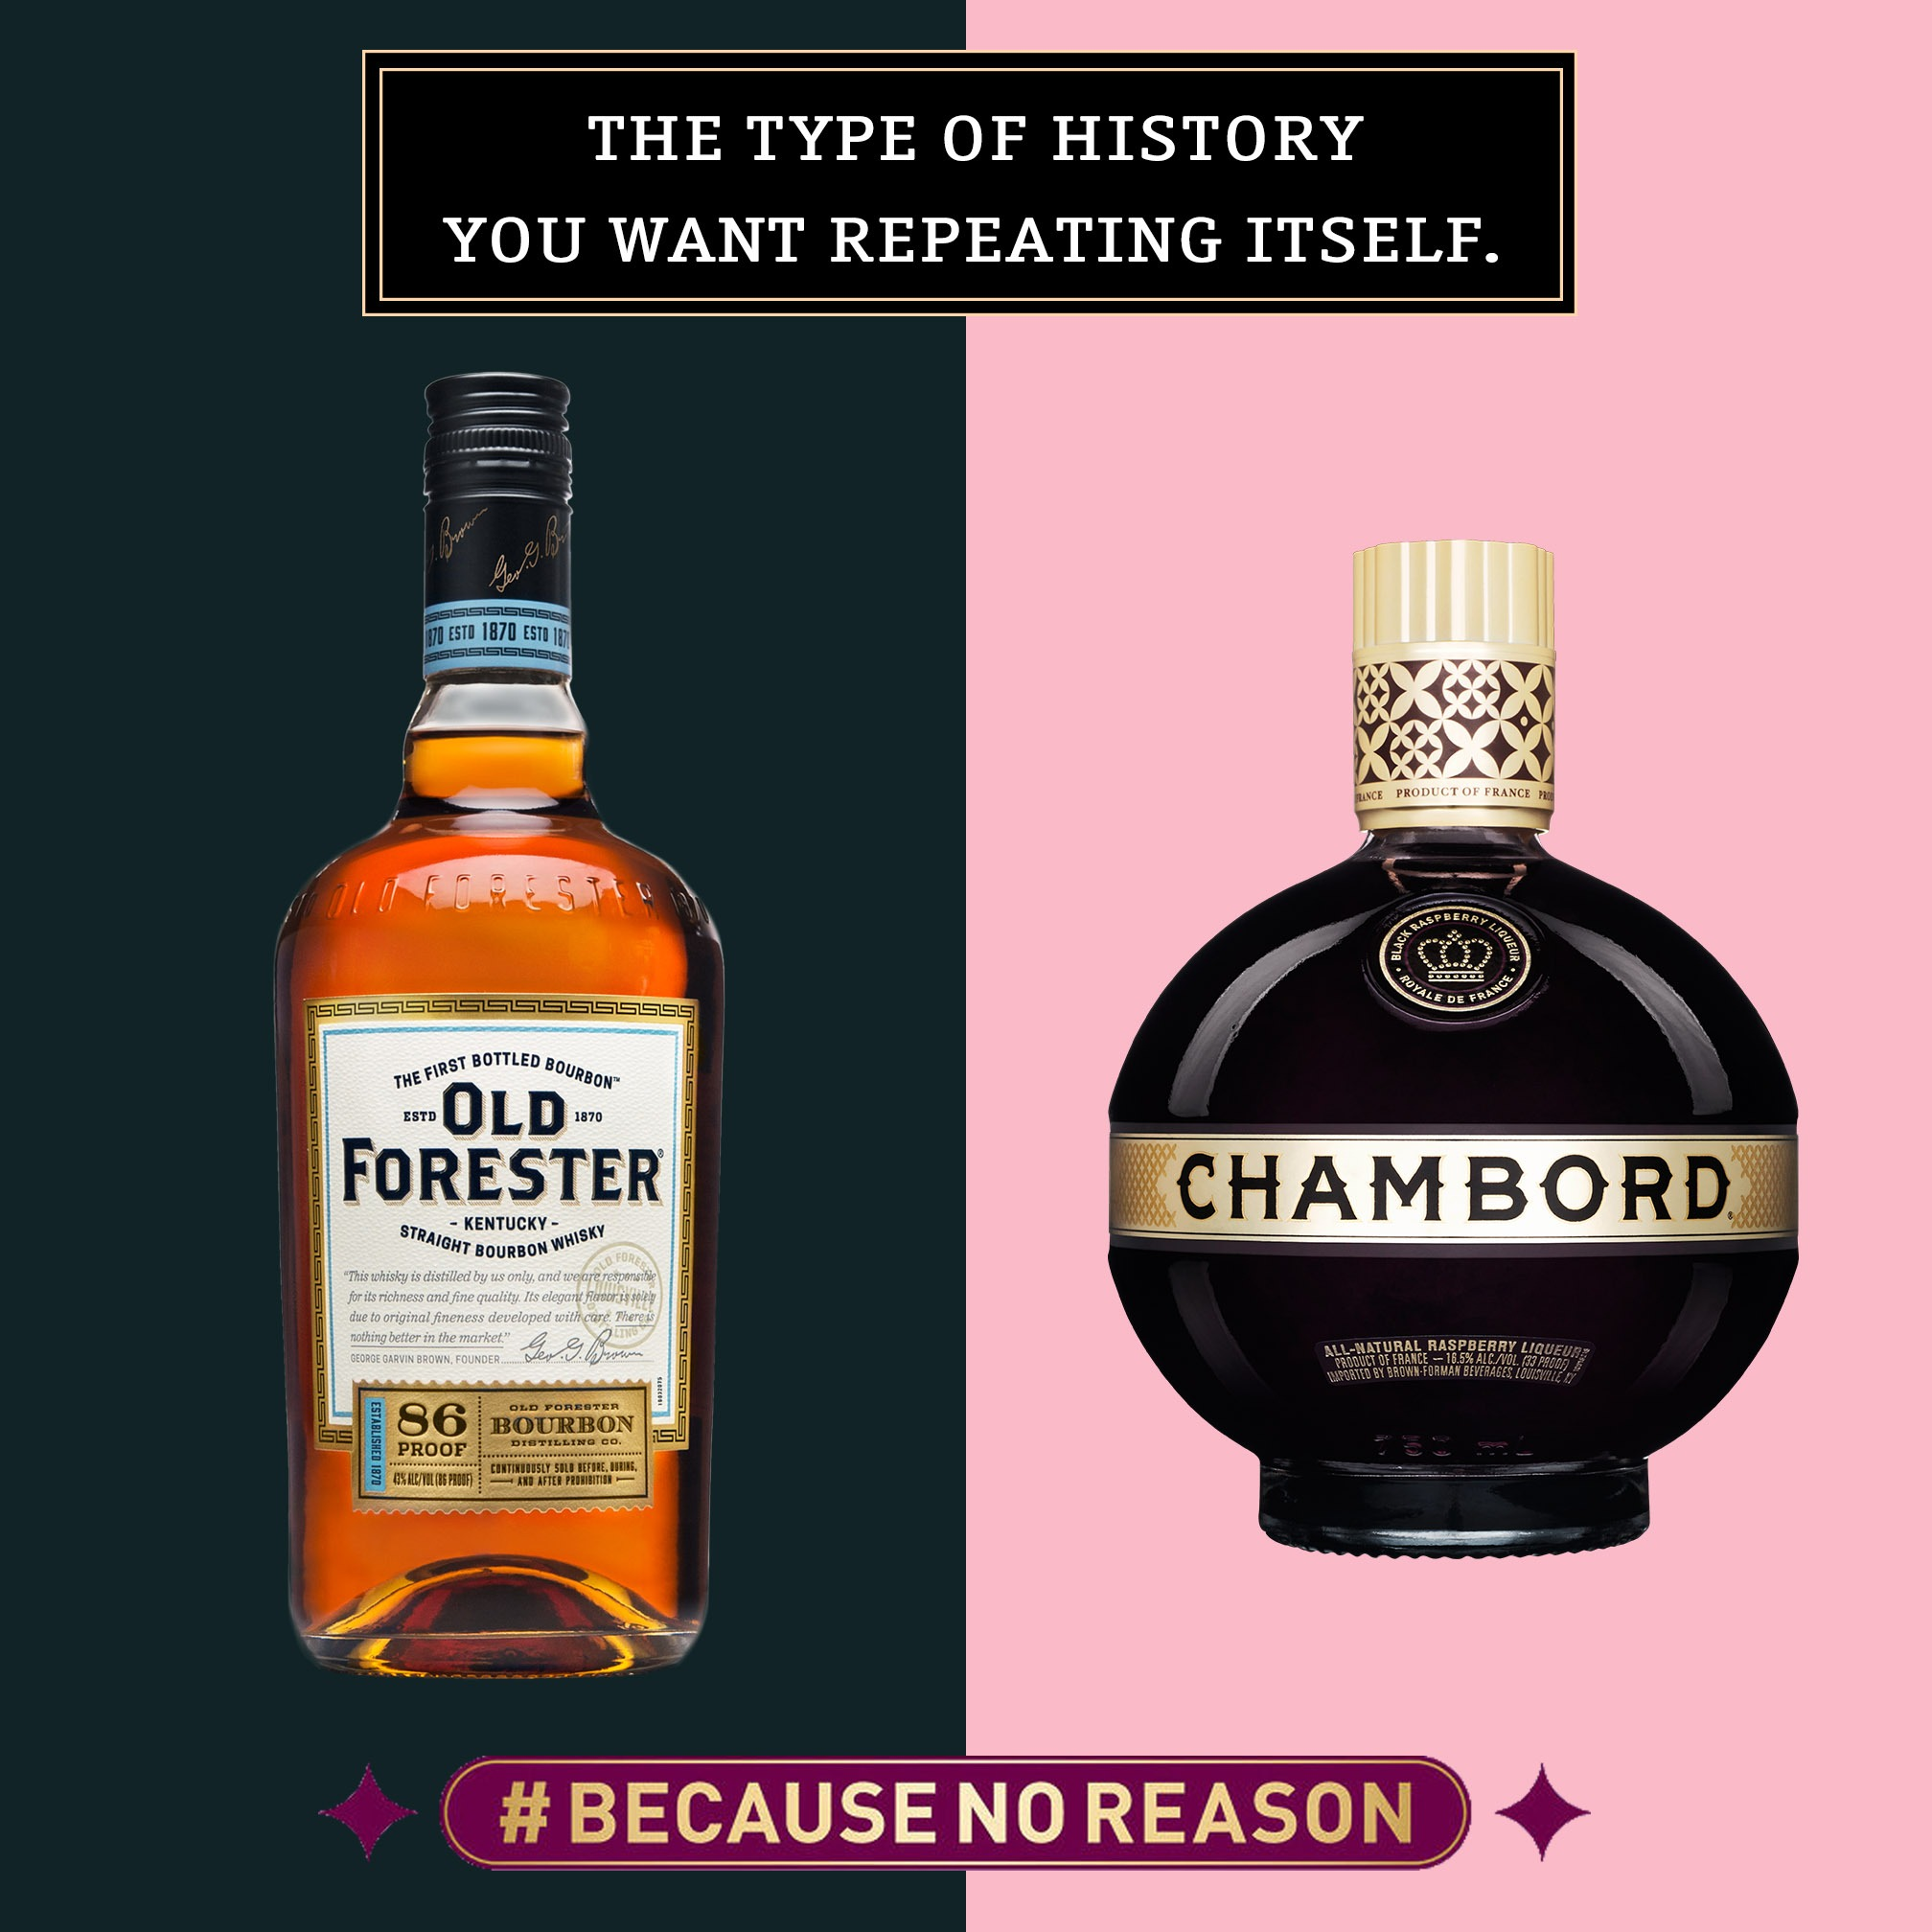 Old Forester + Chambord Competition NOW LIVE!